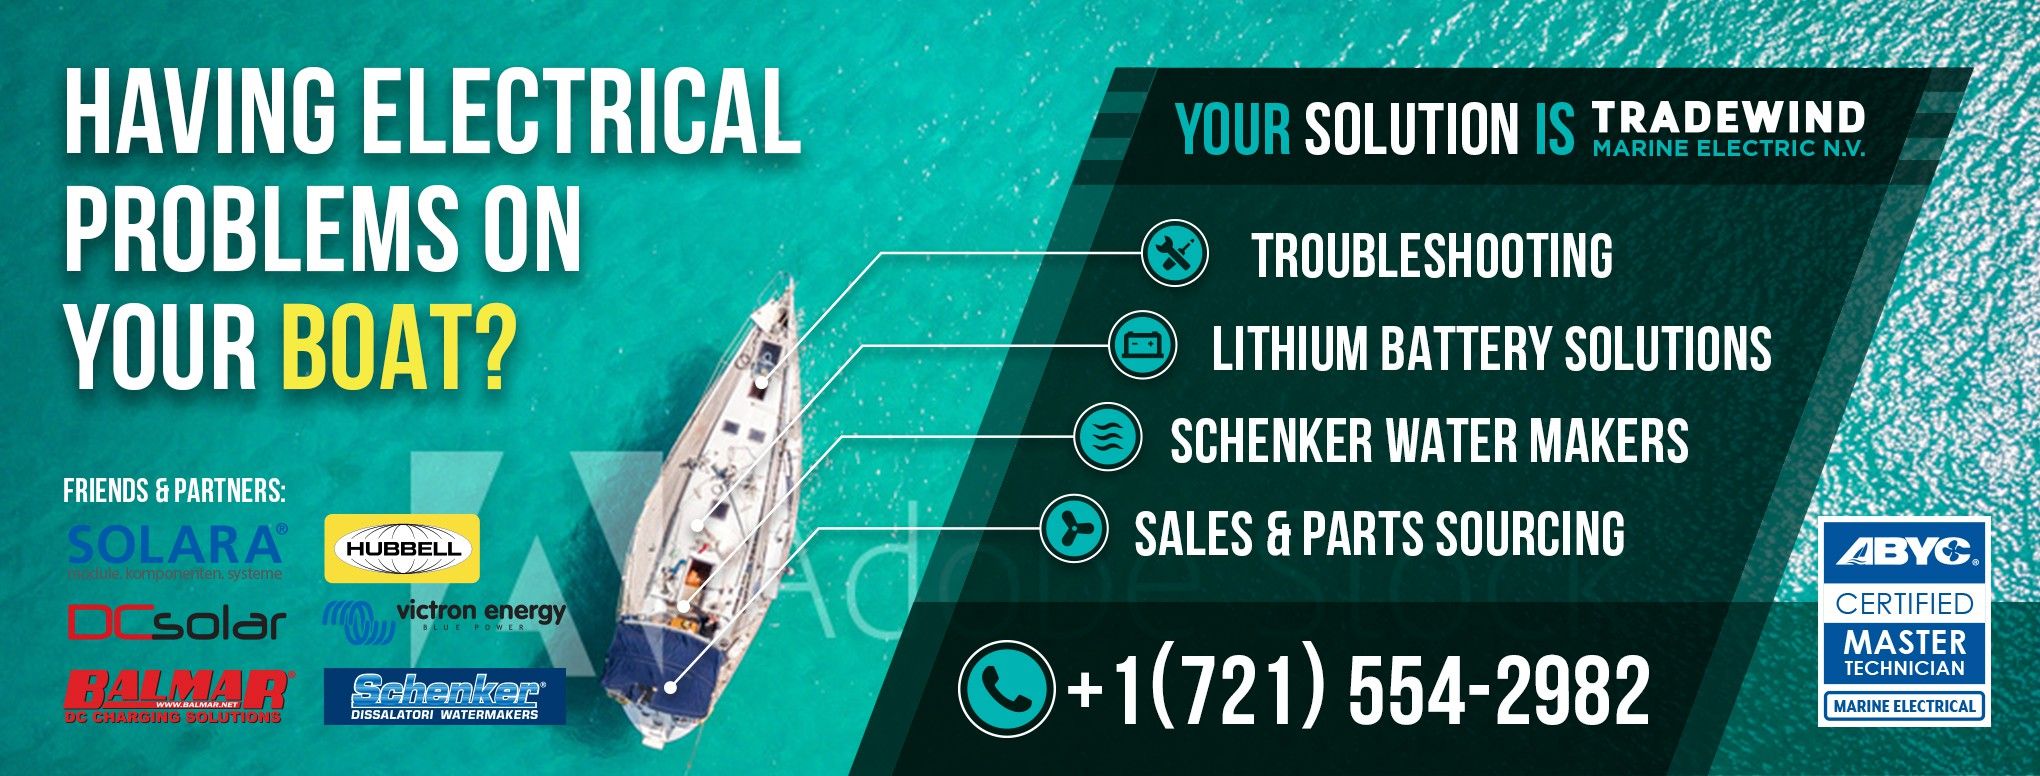 FaceBook page to promote marine electric business.